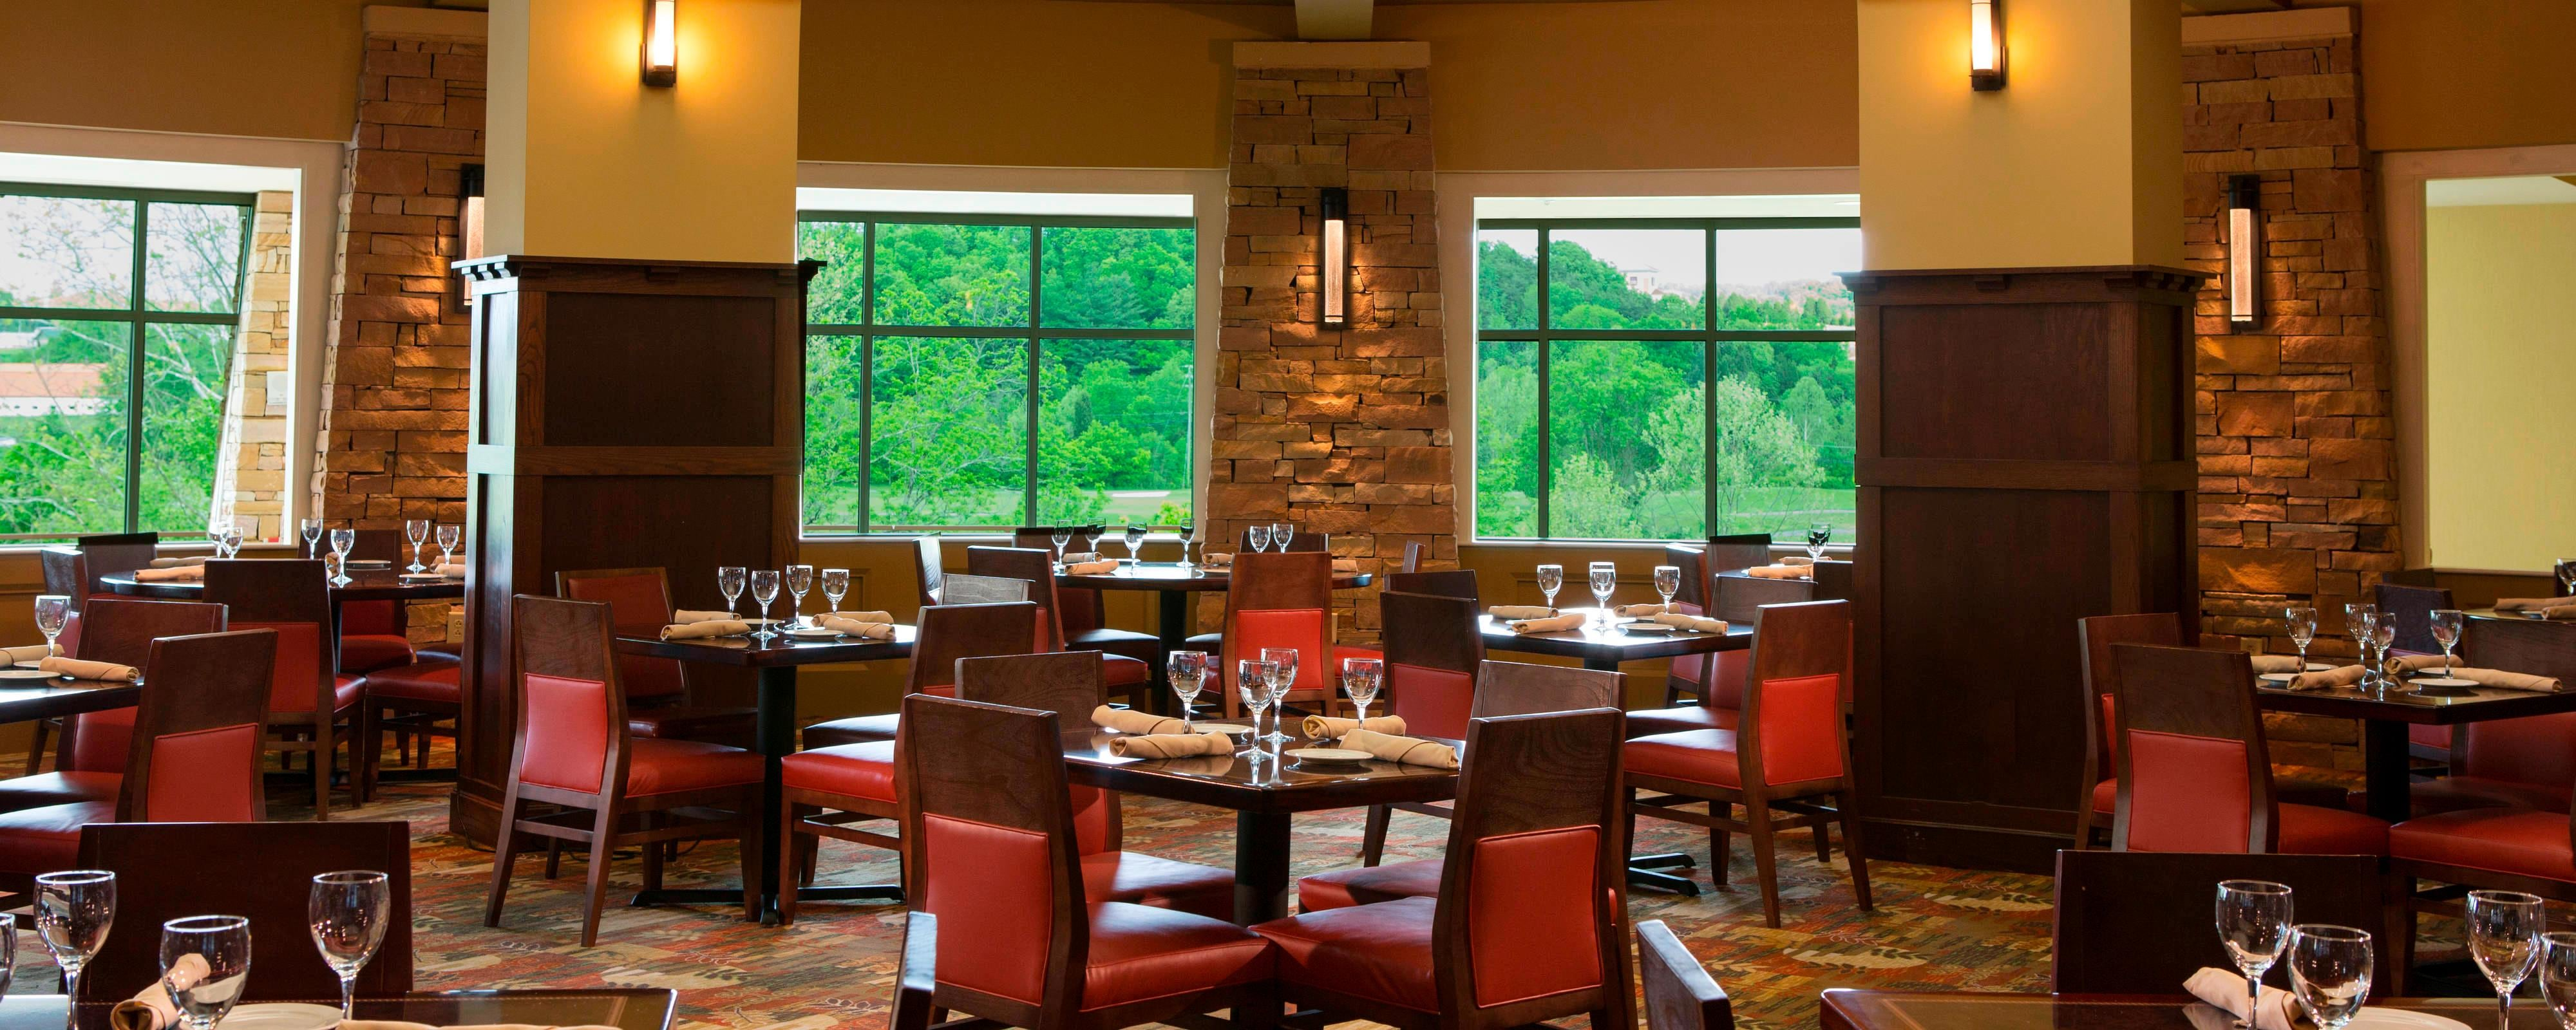 Kingsport Restaurants | MeadowView Tennessee Resort